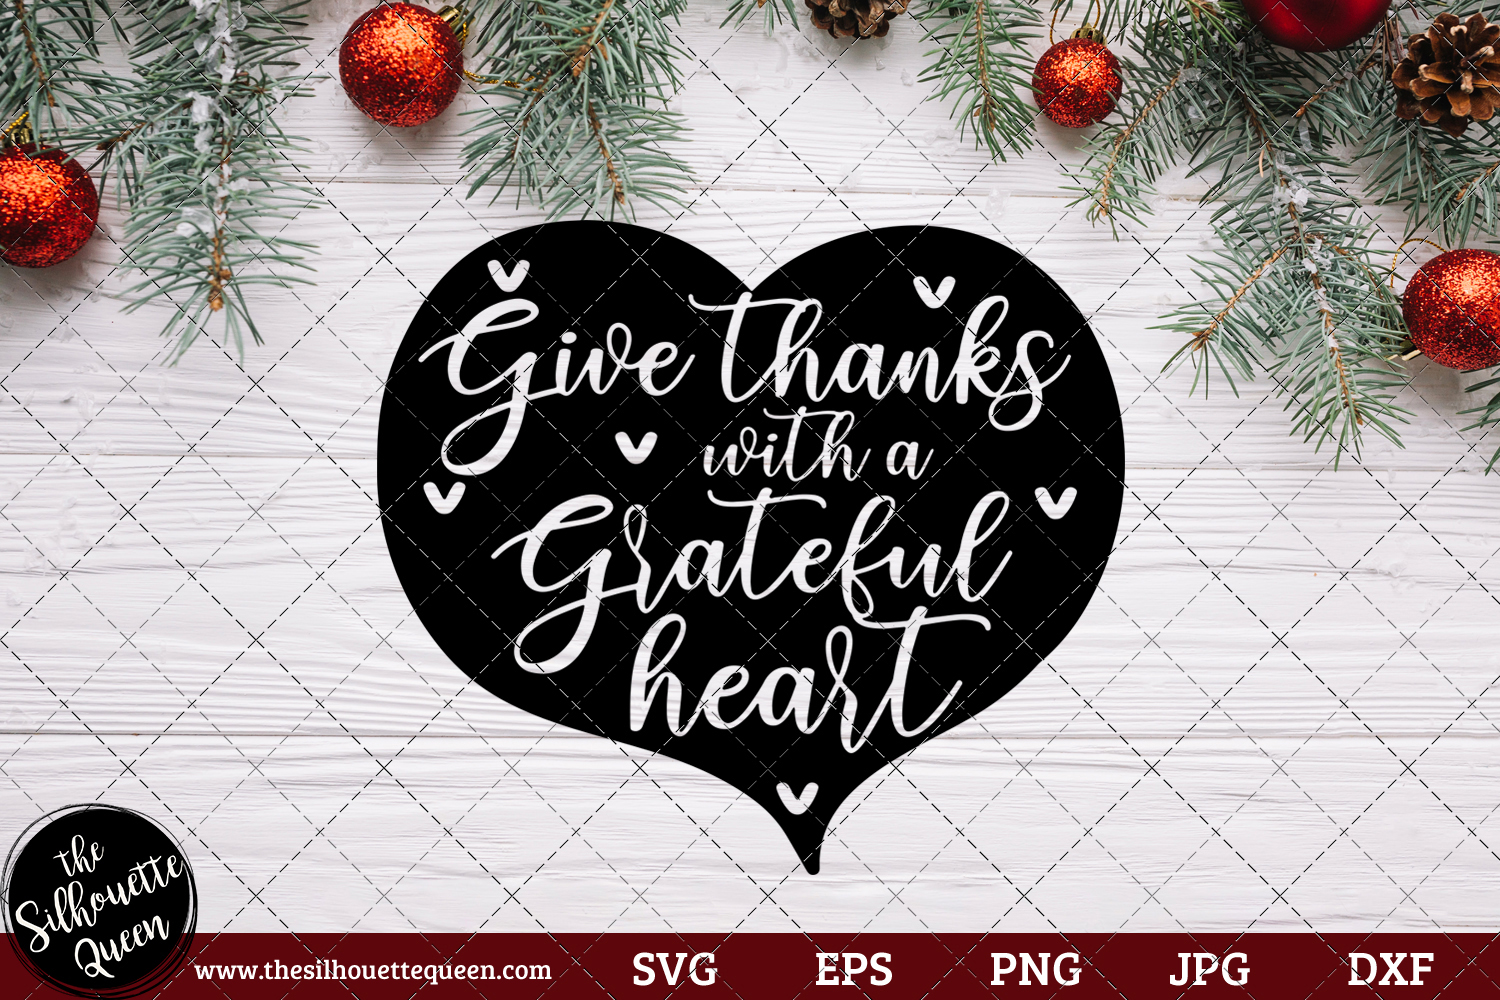 Give Thanks With A Grateful Heart Saying Svg Christmas Svg Holiday Svg Holiday Saying Jpg Eps Dxf Png Cut File For Cricut Clipart Silhouette The Silhouette Queen